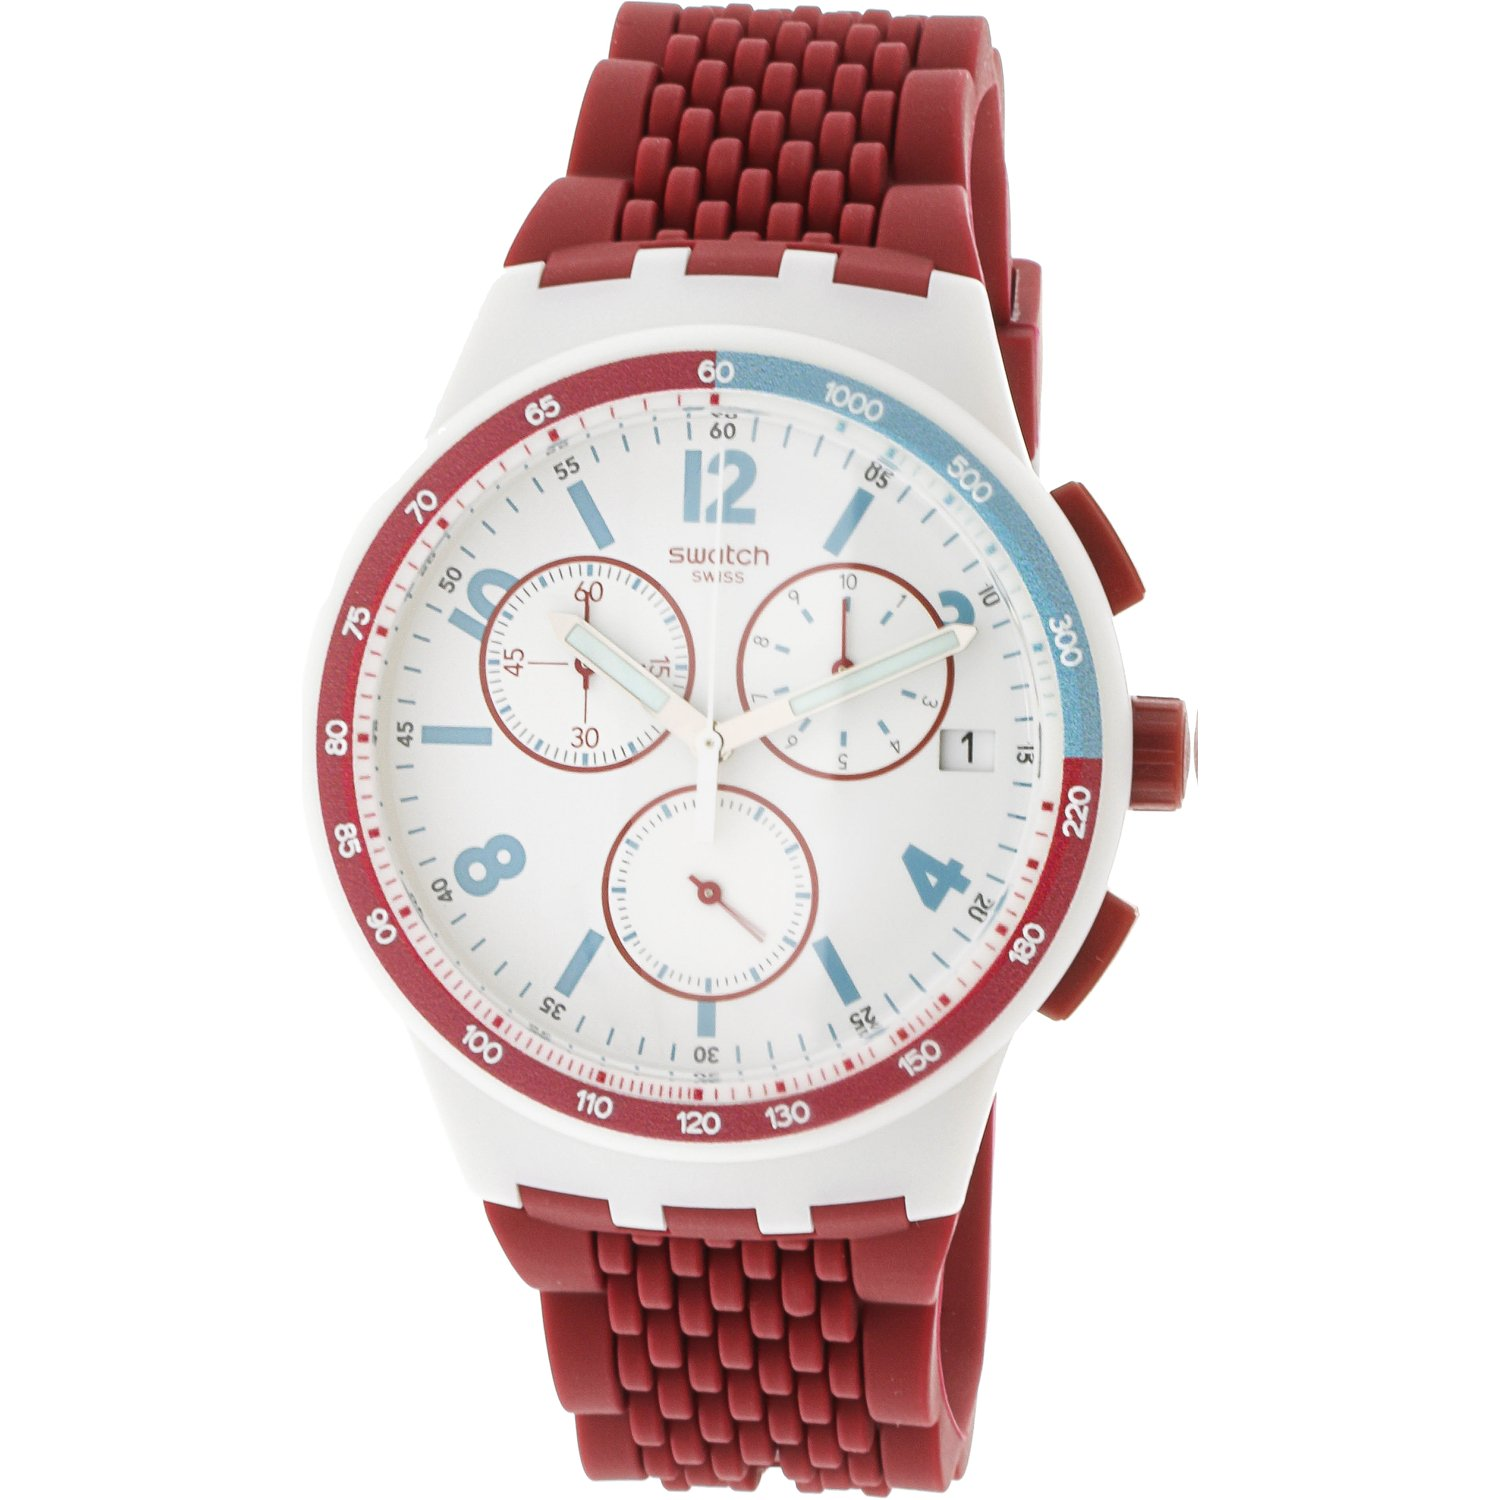 Swatch Men's Red Track SUSM403 Silicone Quartz Fashion Watch